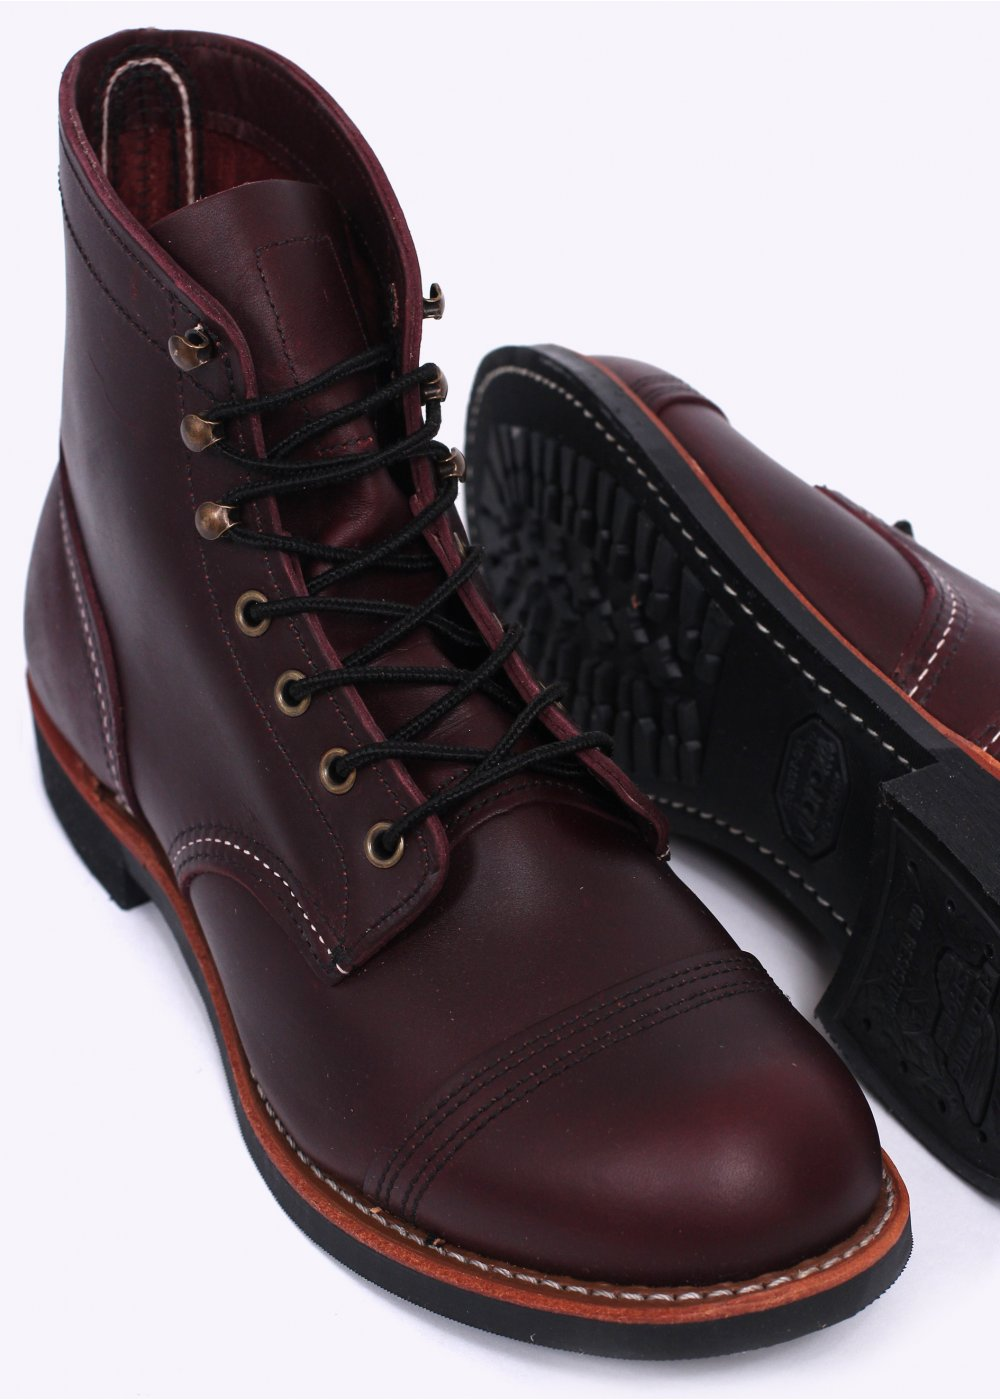 Popular Red Wing 8112 Iron Ranger Boots  FREE SHIPPING TO UK Amp EU